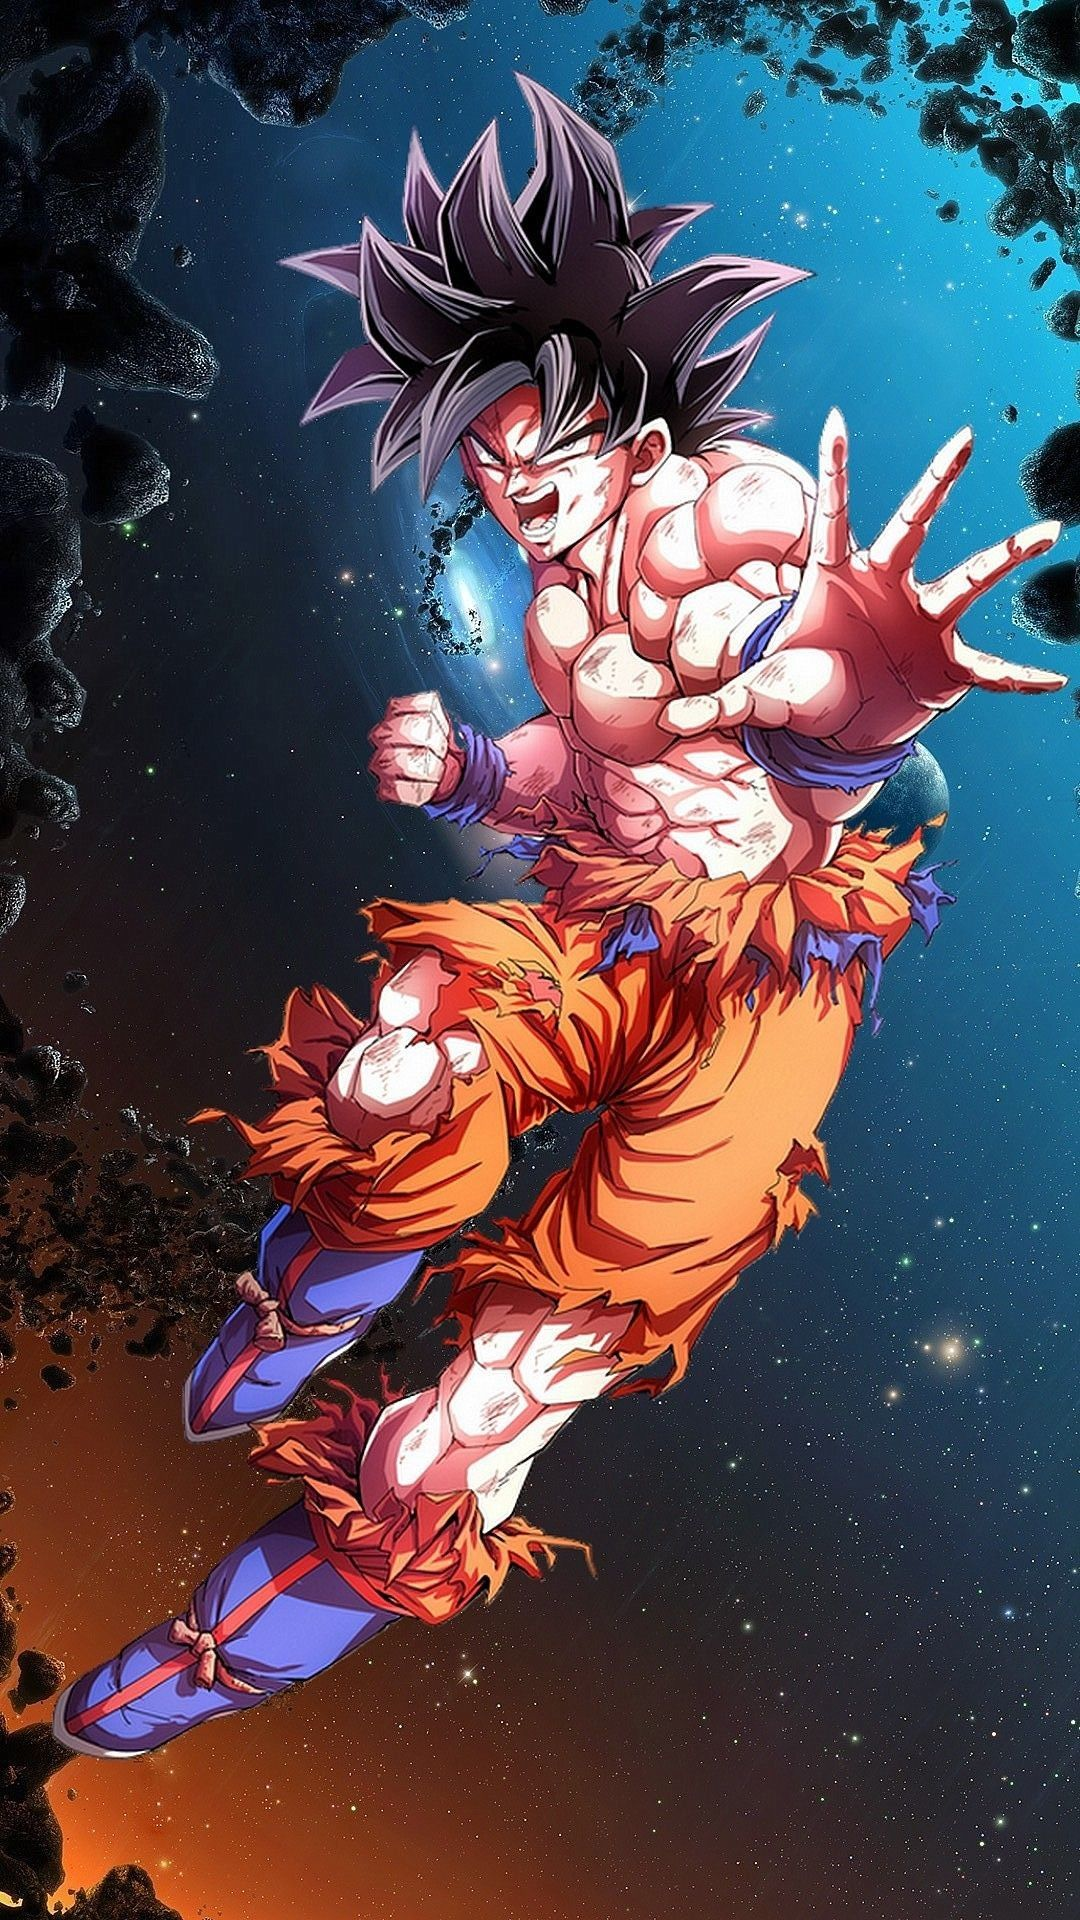 Dragon Ball Super Goku Ultra Instinct Wallpaper 4k 77 Goku Iphone Wallpapers On Wallpap In 2020 Anime Dragon Ball Super Dragon Ball Super Goku Dragon Ball Super Manga